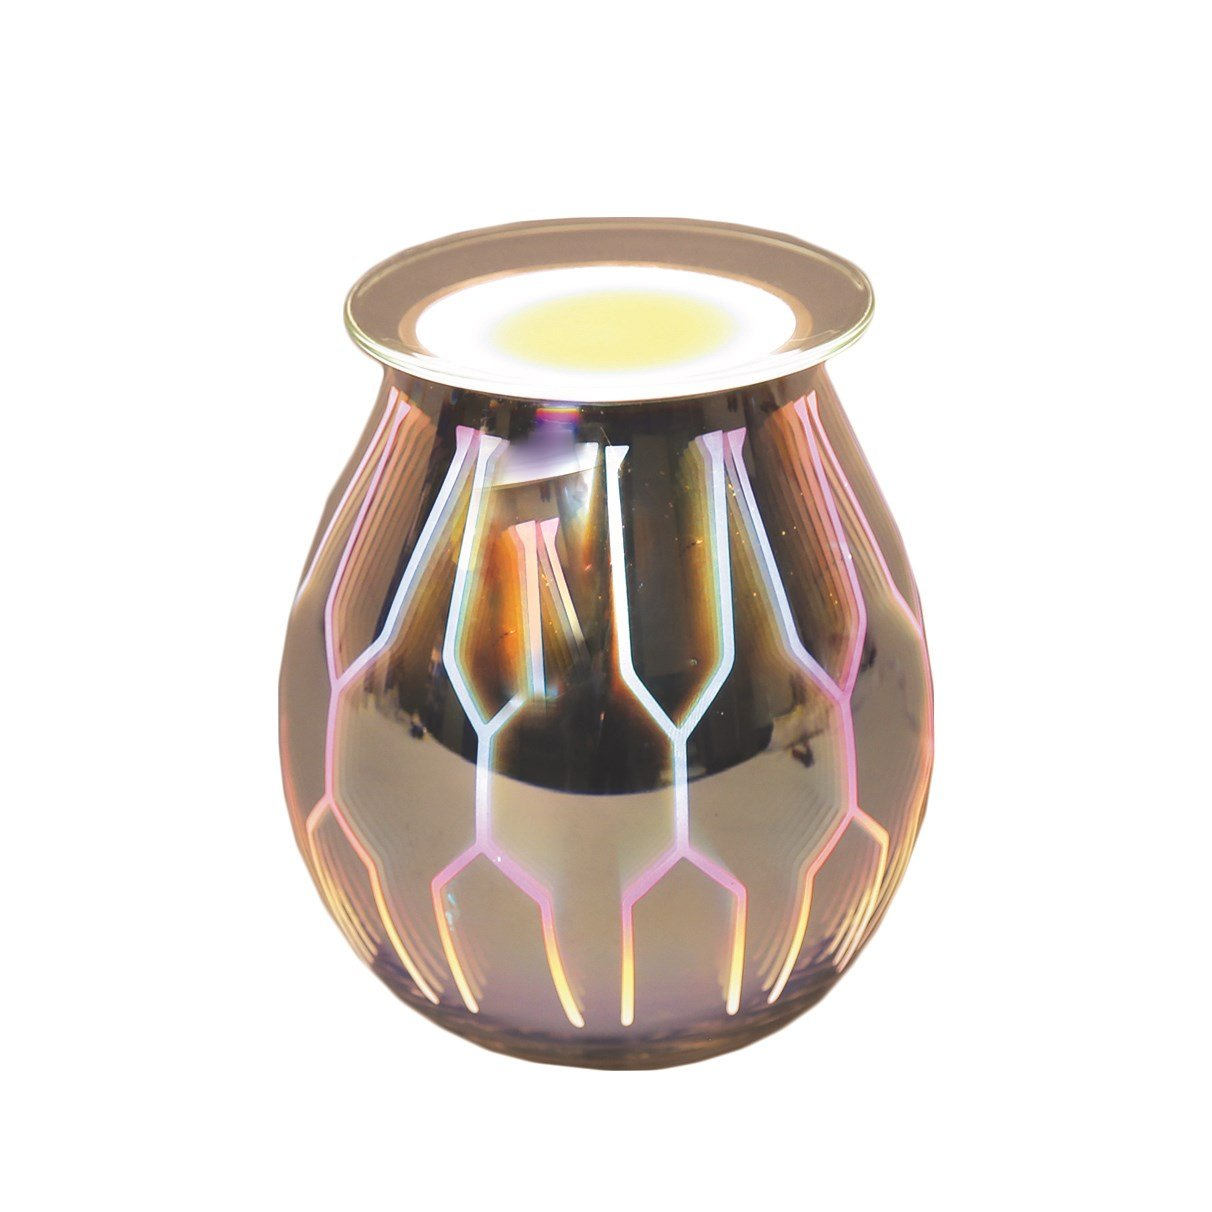 Aroma Accessories 3D Design Electric Wax Melt Burner Lamp Scented Tart Fragrance Aroma Warmer 14 centimetres